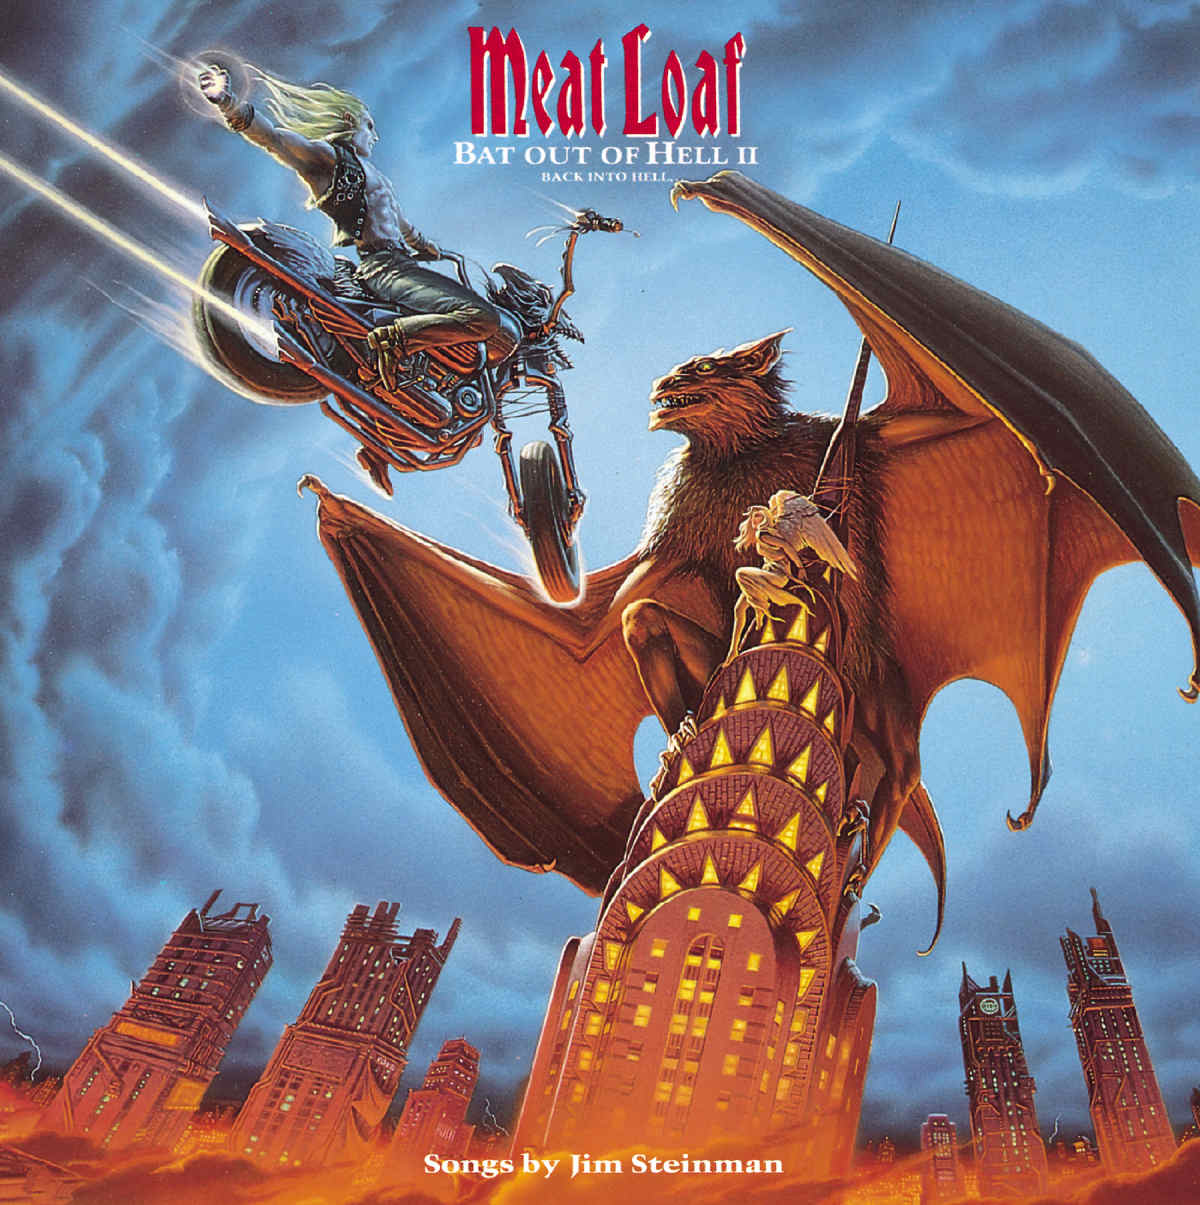 It Just Won't Quit by Meat Loaf